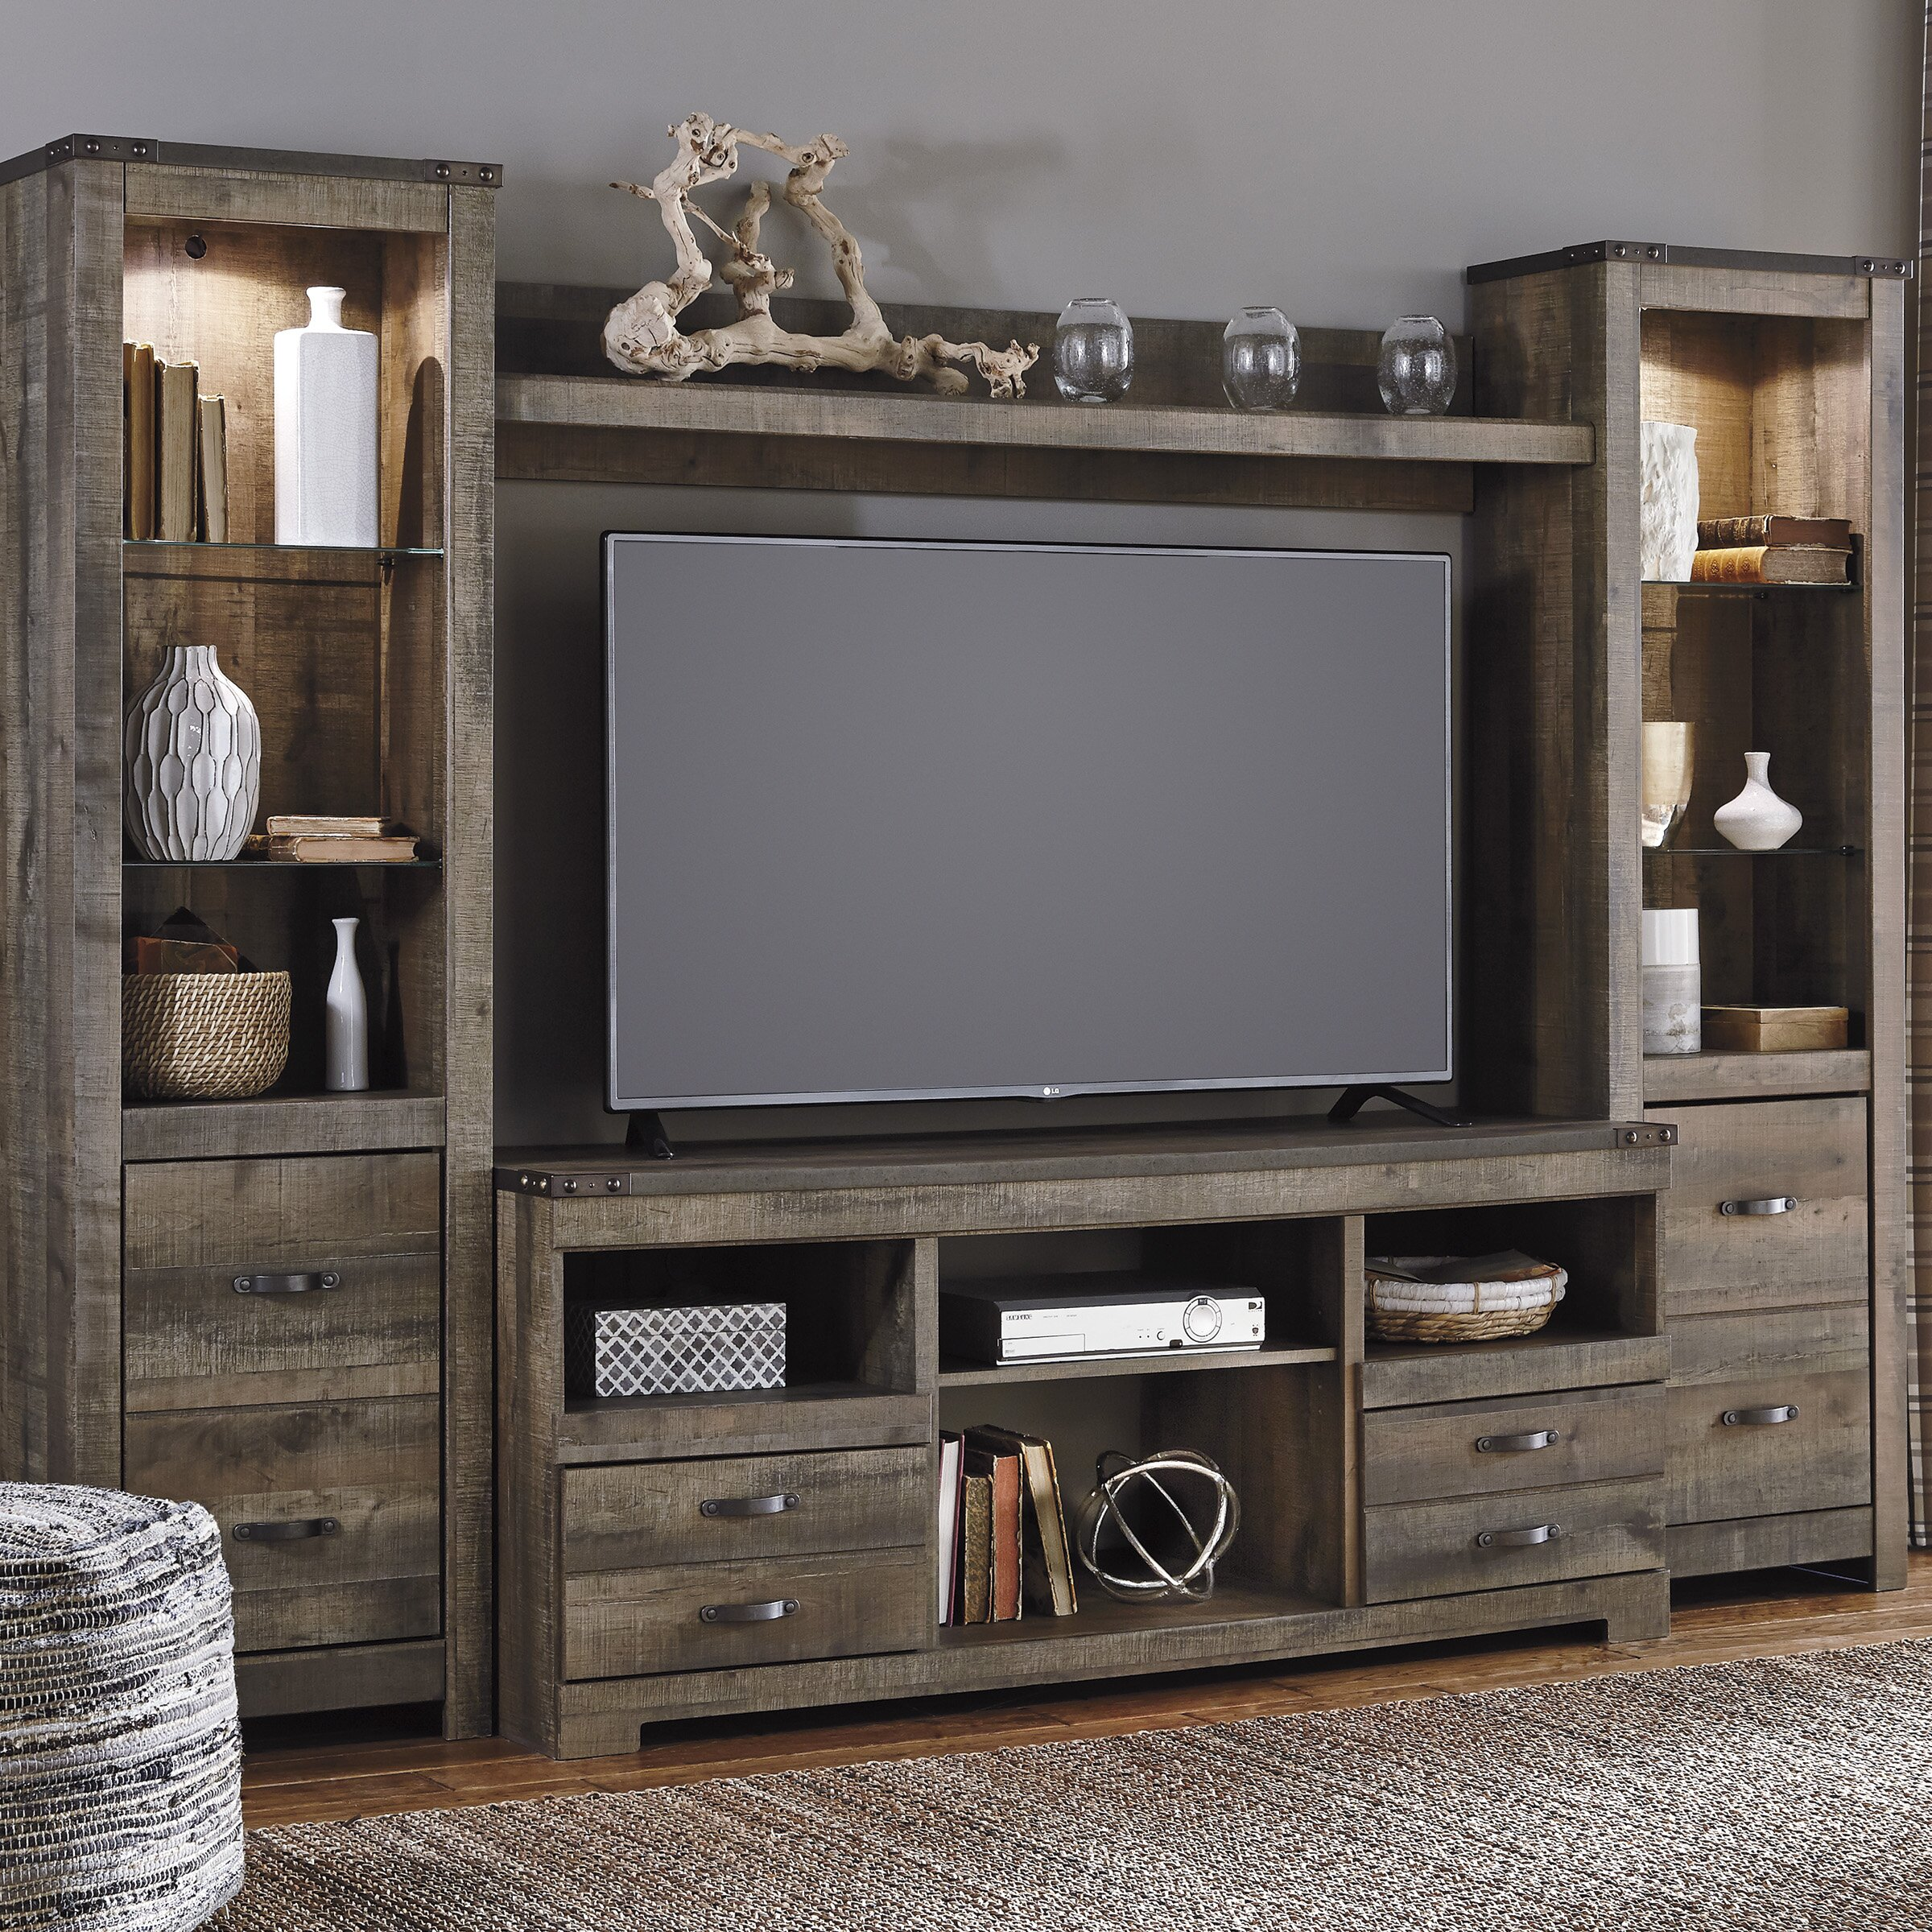 Signature design by ashley tv stand with fireplace option for Fireplace options